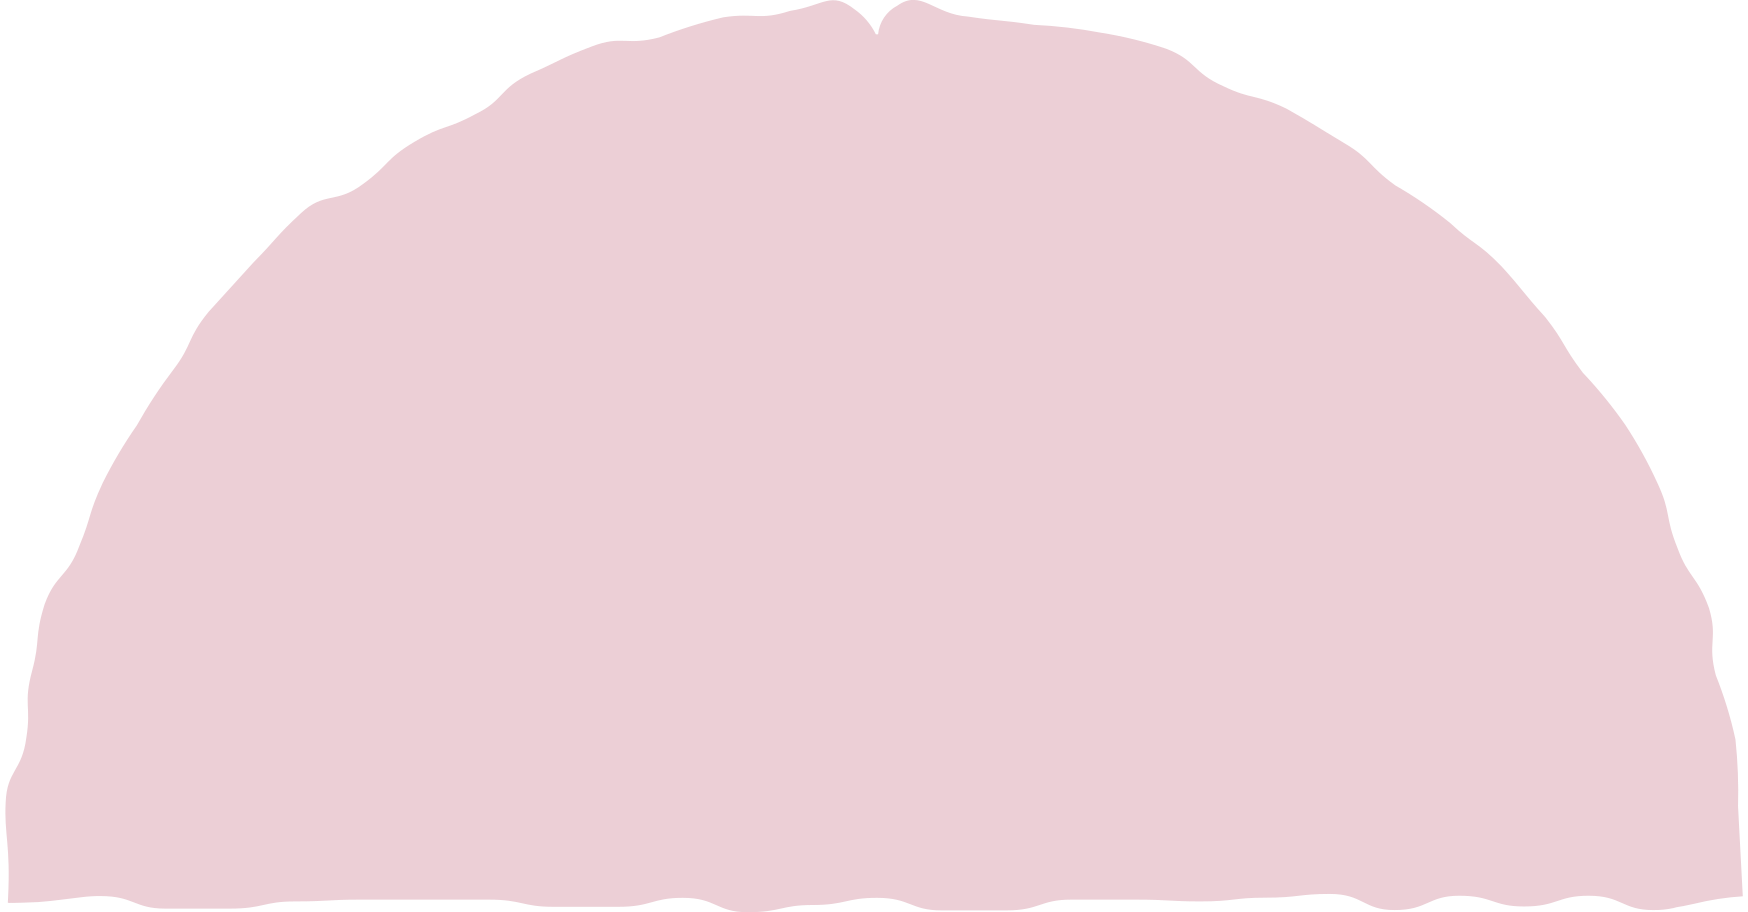 style semicircle pink Vector images in PNG and SVG   Icons8 Illustrations